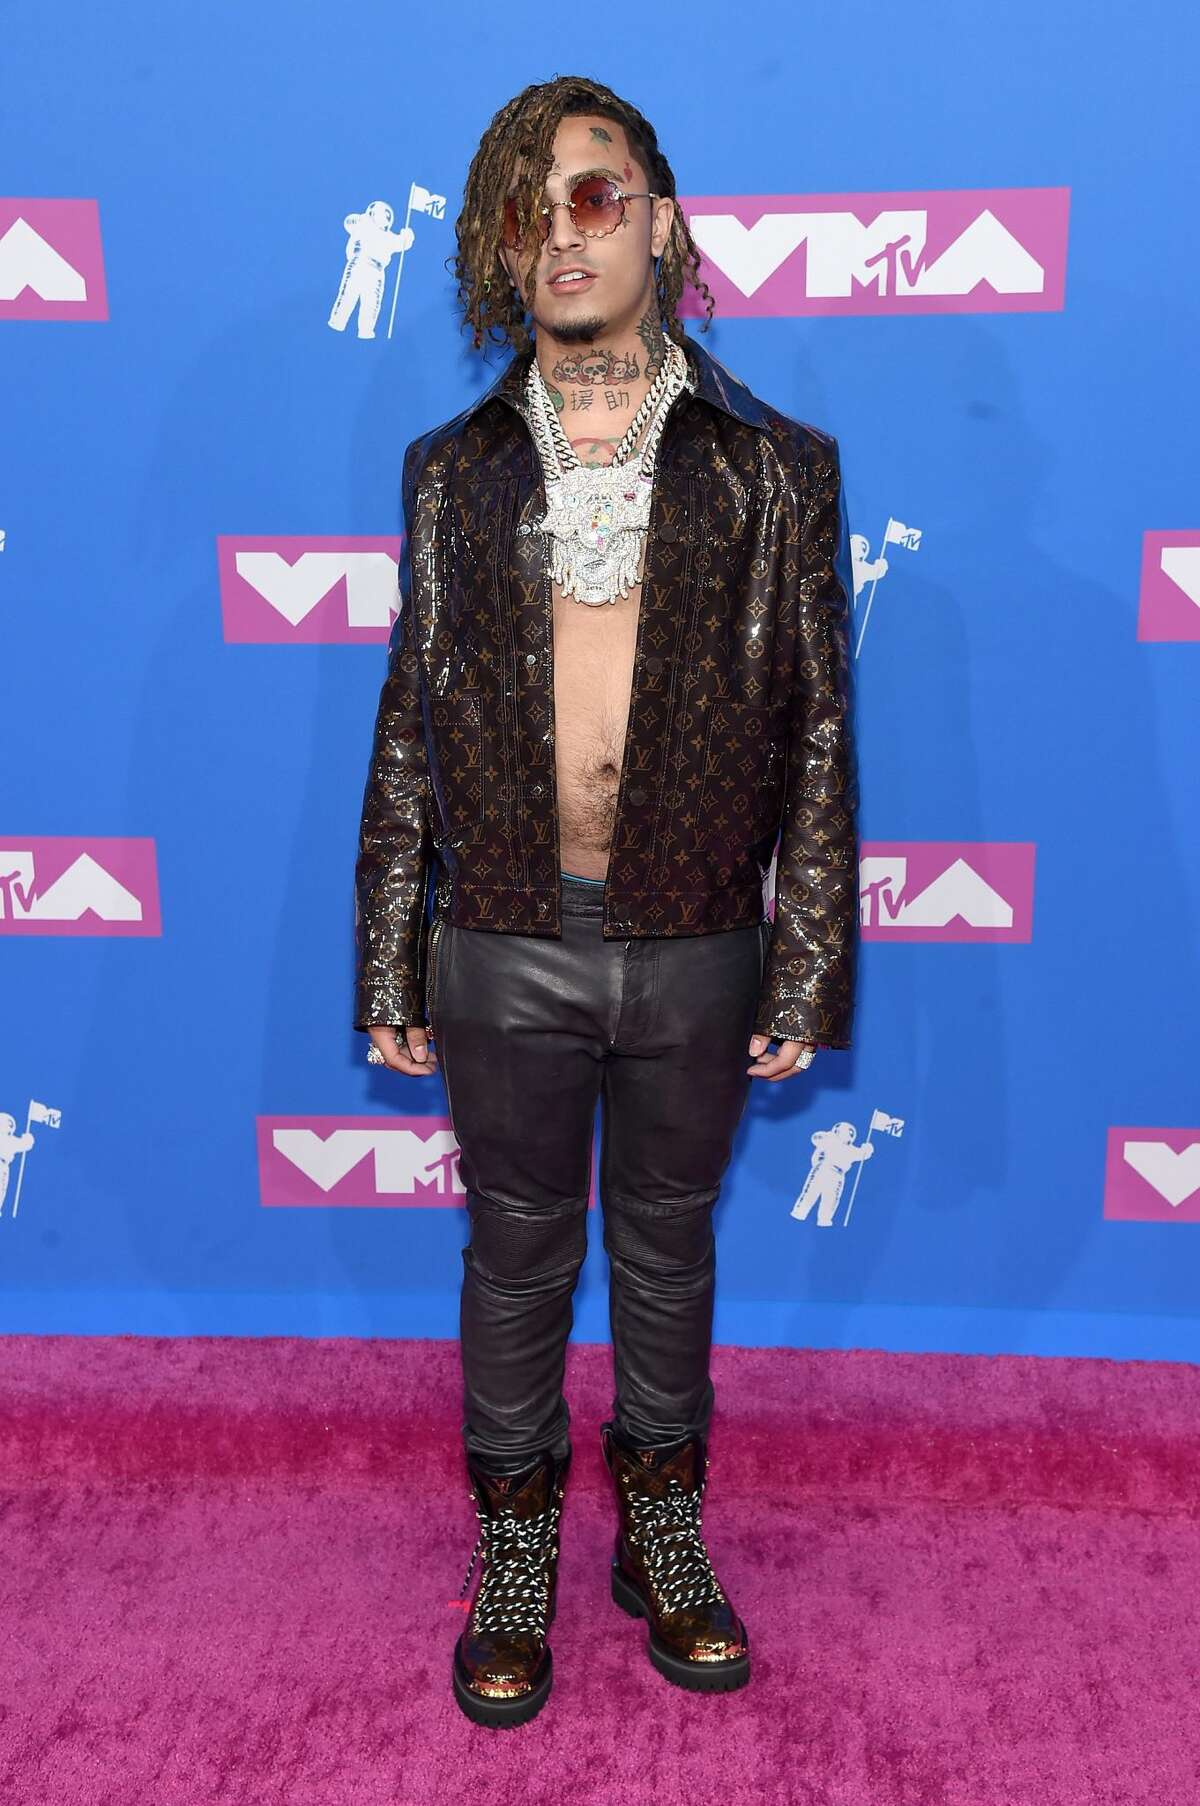 Lil Pump and Lil Skies Revention Music Center at 520 TexasFriday, May 17 7 p.m.Multi-platinum rapper Lil Pump is headlining at downtown's Revention Music Center as a part of his spring 2019 tour with Lil Skies. Tickets start at $55 per person.